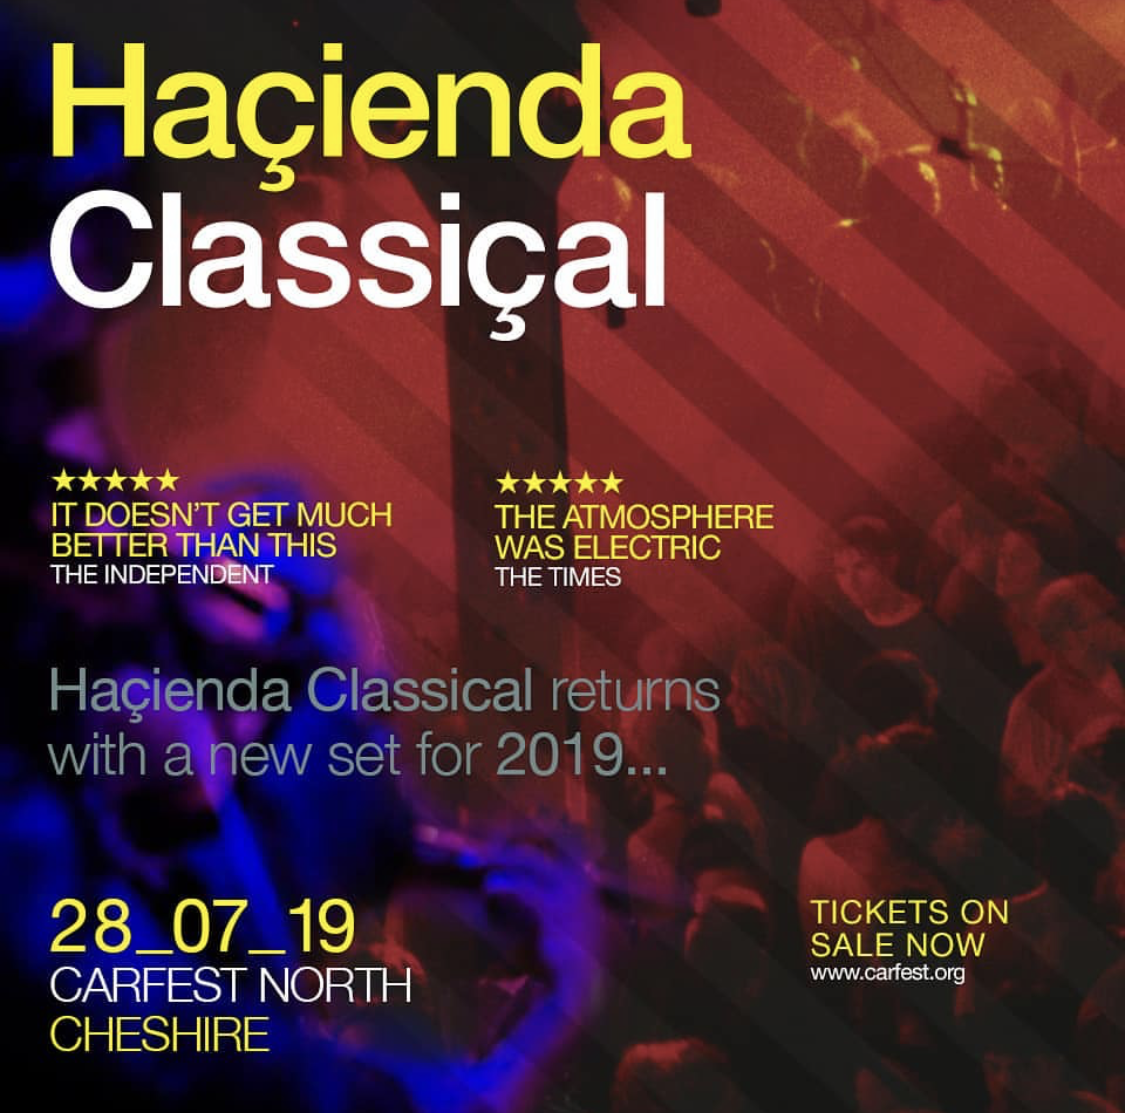 190728 Haçienda Classical Carfest North.jpeg